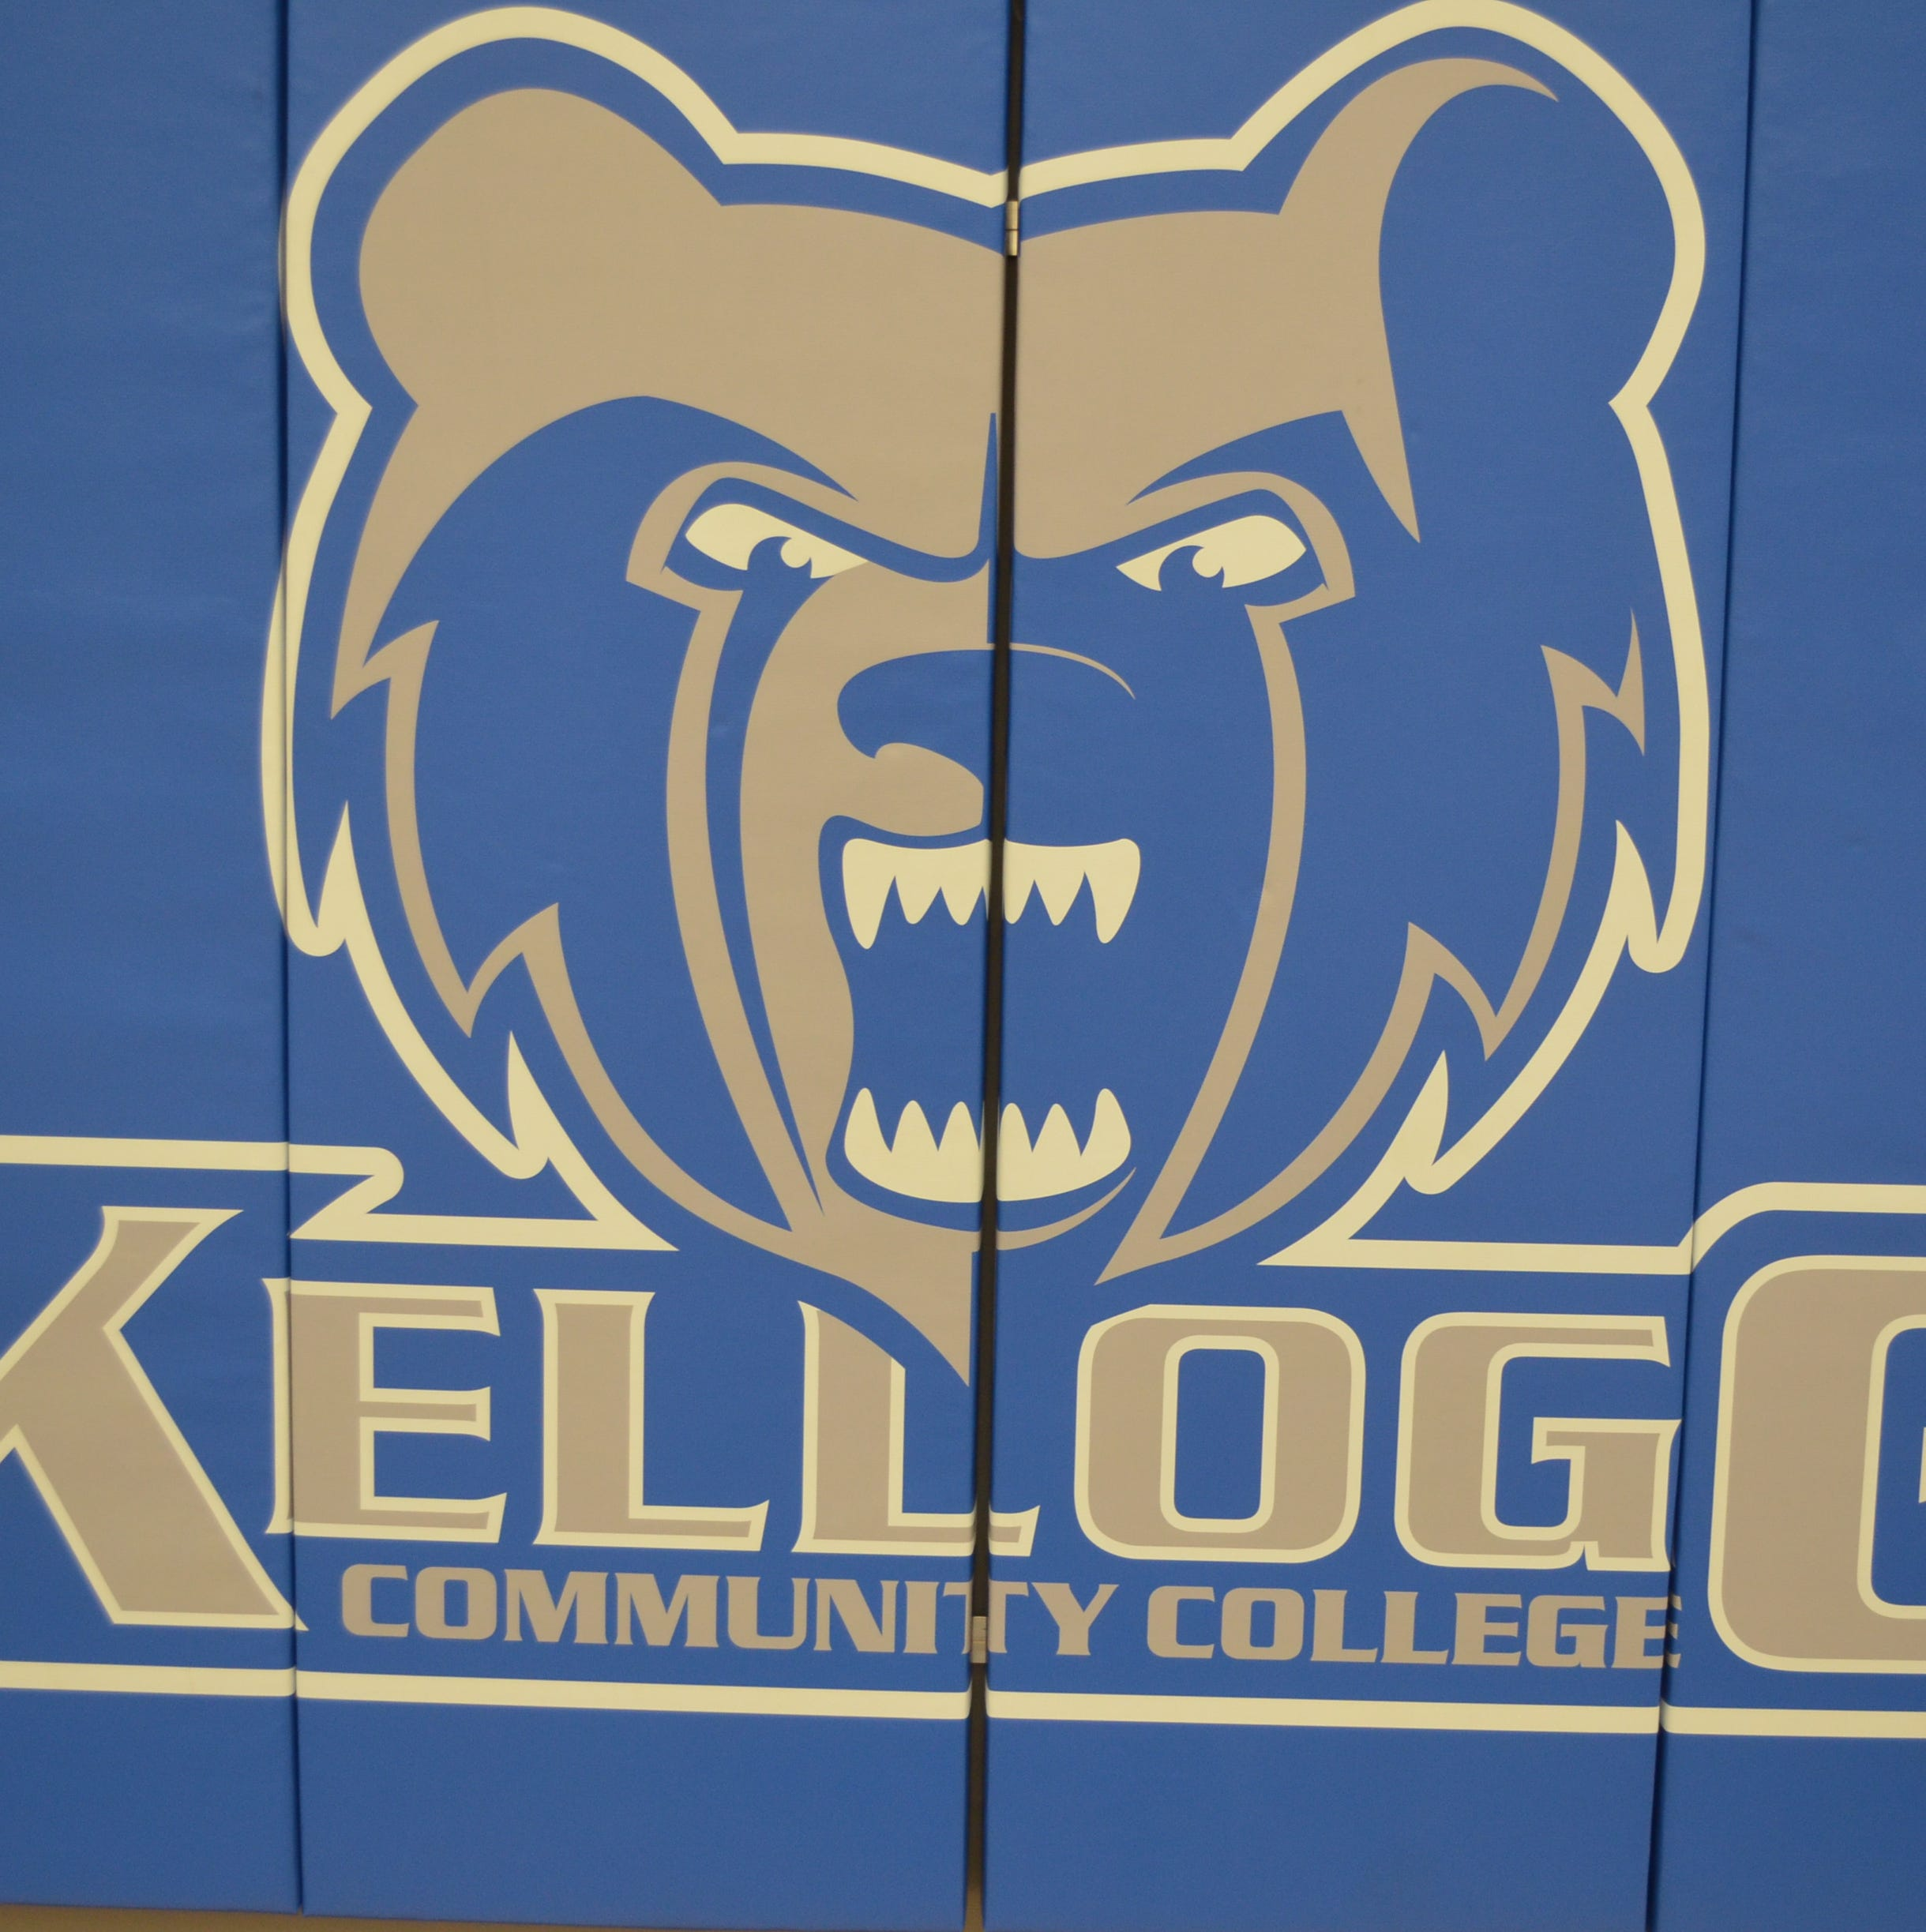 Kellogg Community College Notebook: Referee Al Bobrofsky to be honored in new gym